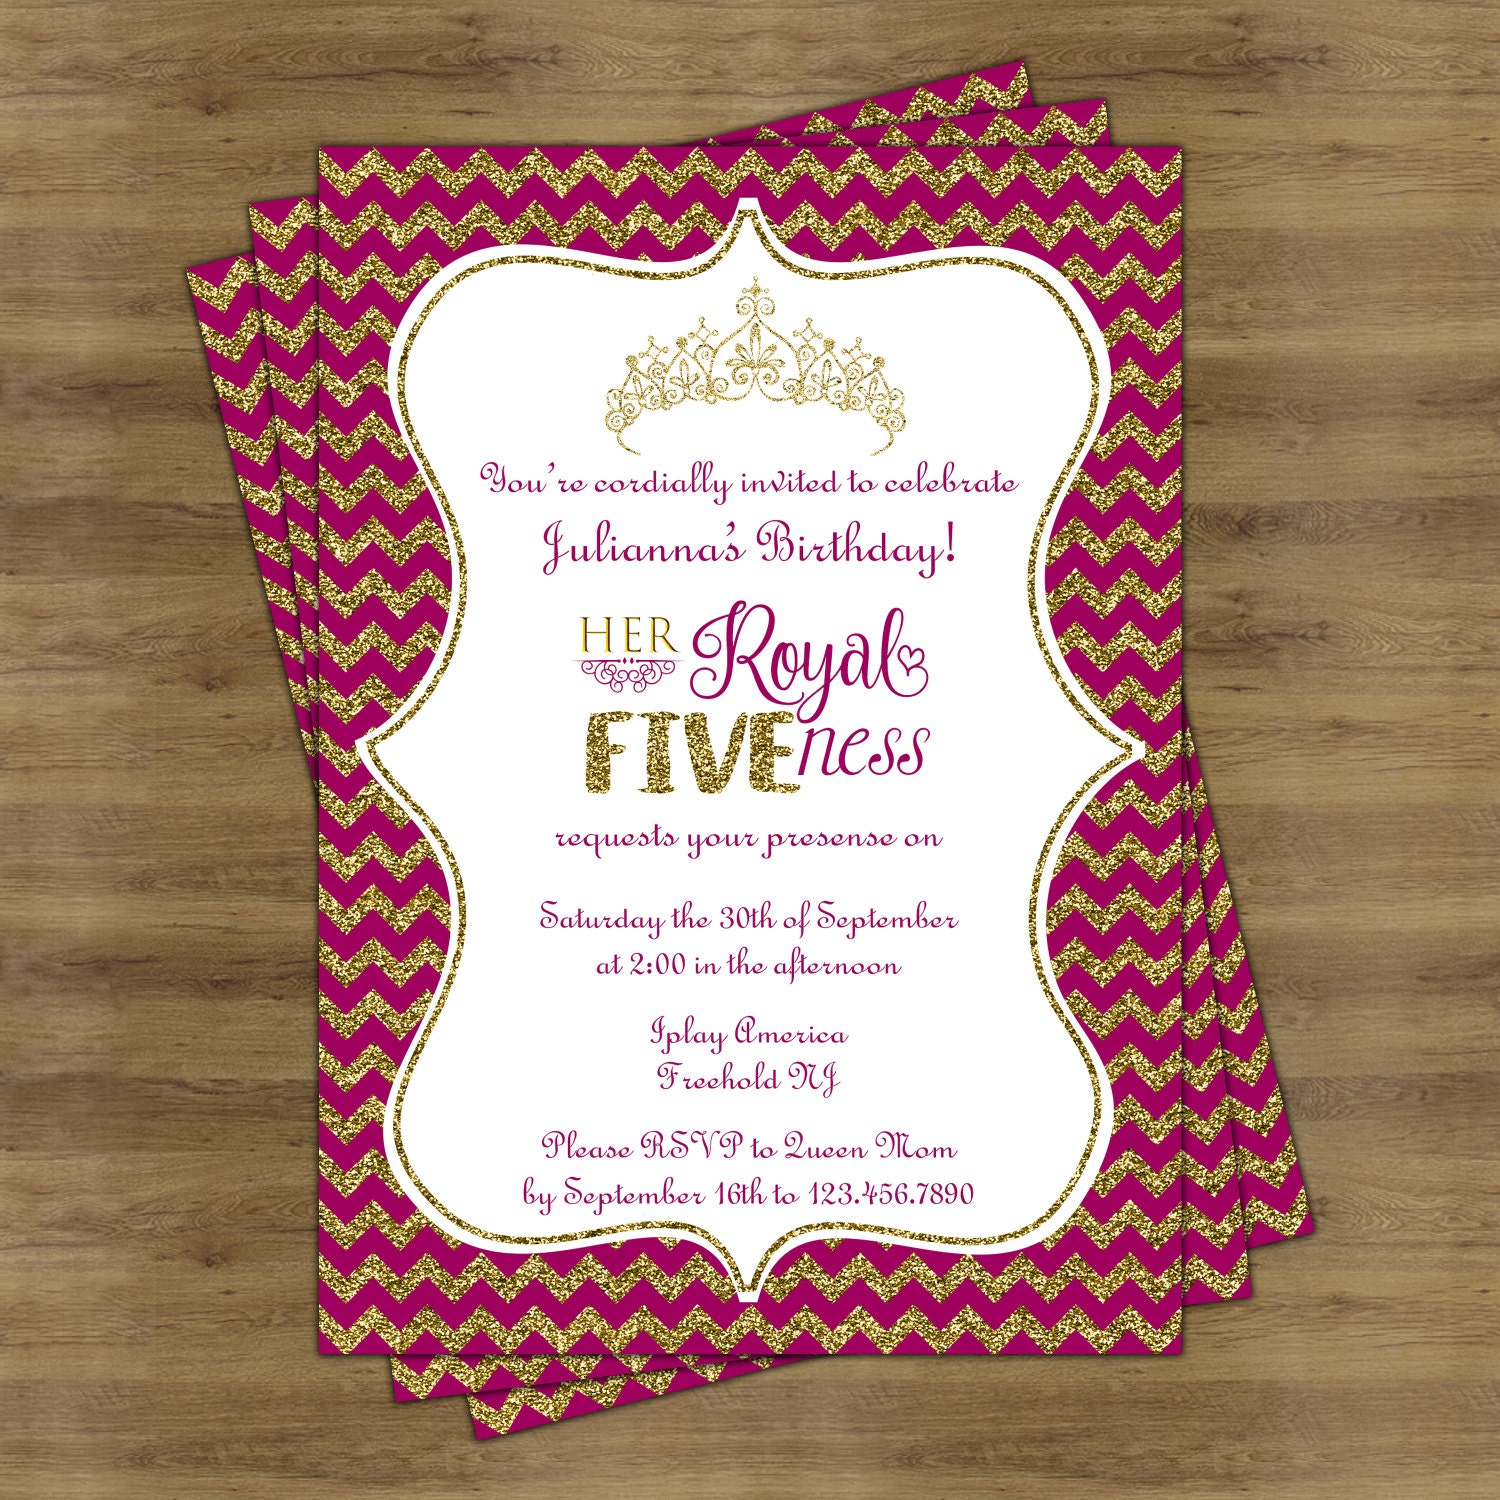 Her Royal Fiveness Birthday Invitation Pink and Gold Birthday | Etsy